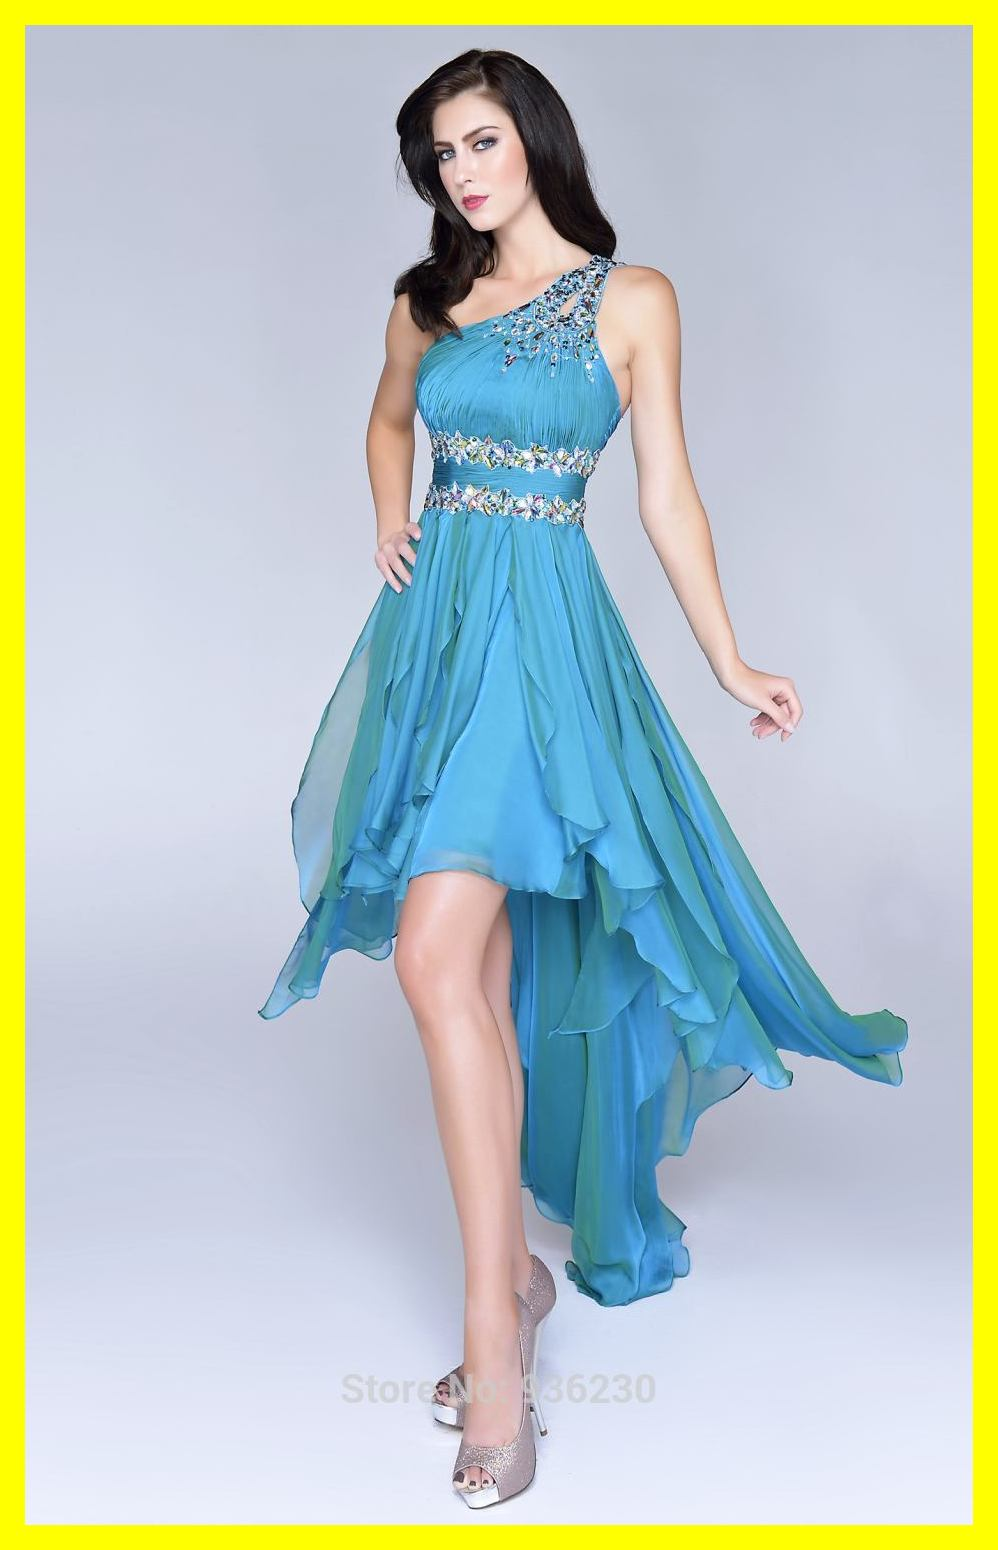 Homecoming Dresses Clearance